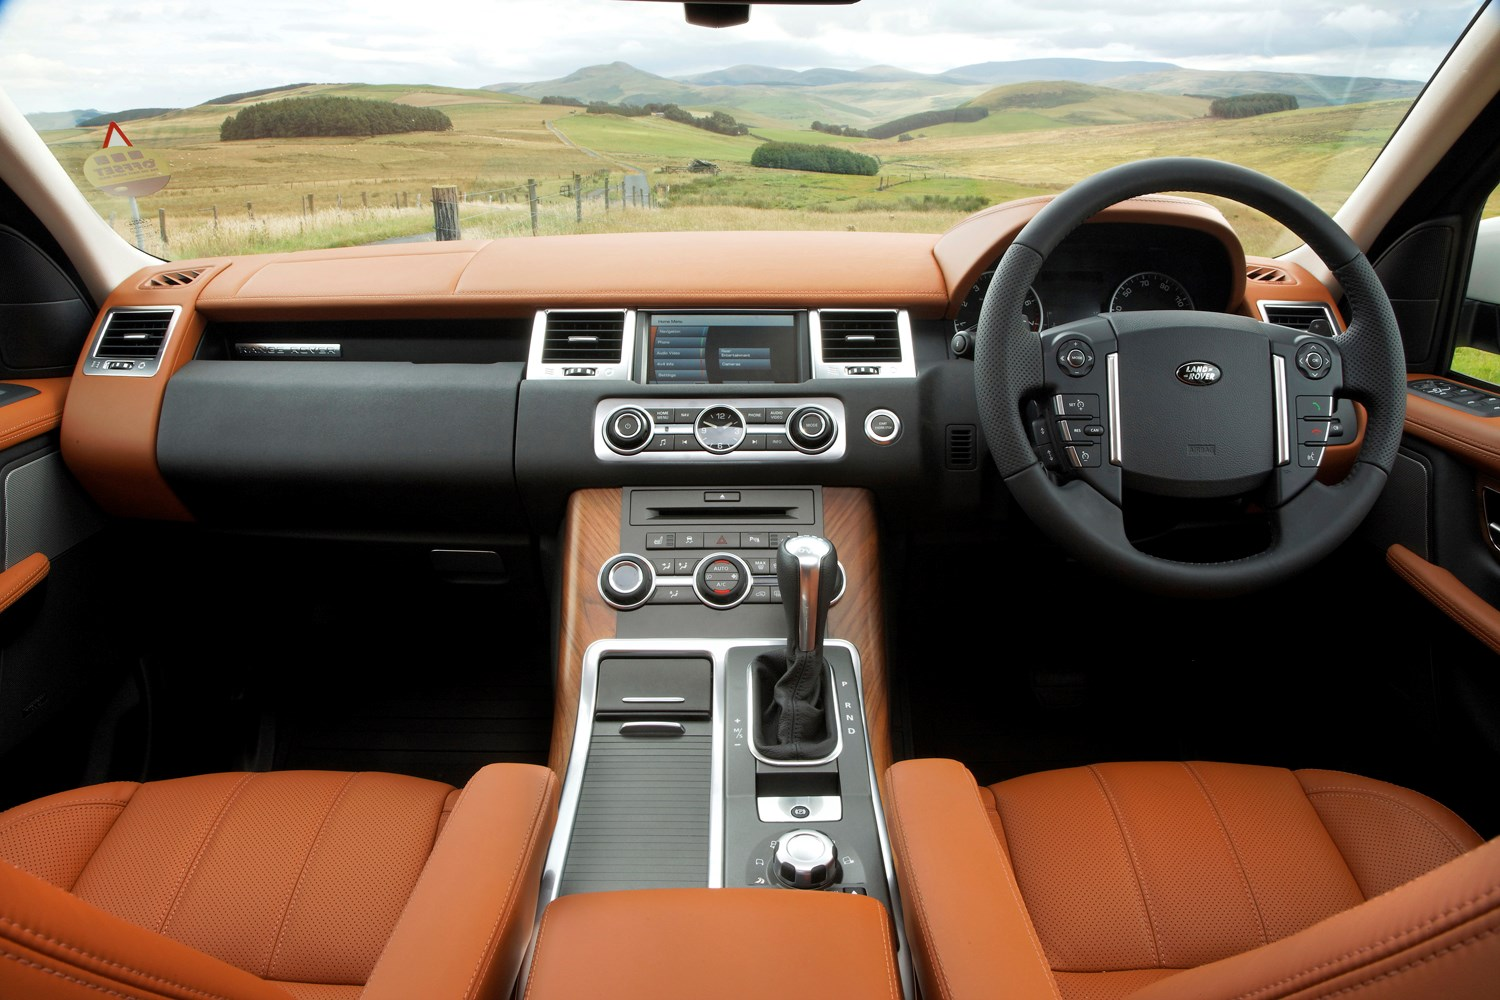 2012 range rover sport black interior images galleries with a bite. Black Bedroom Furniture Sets. Home Design Ideas